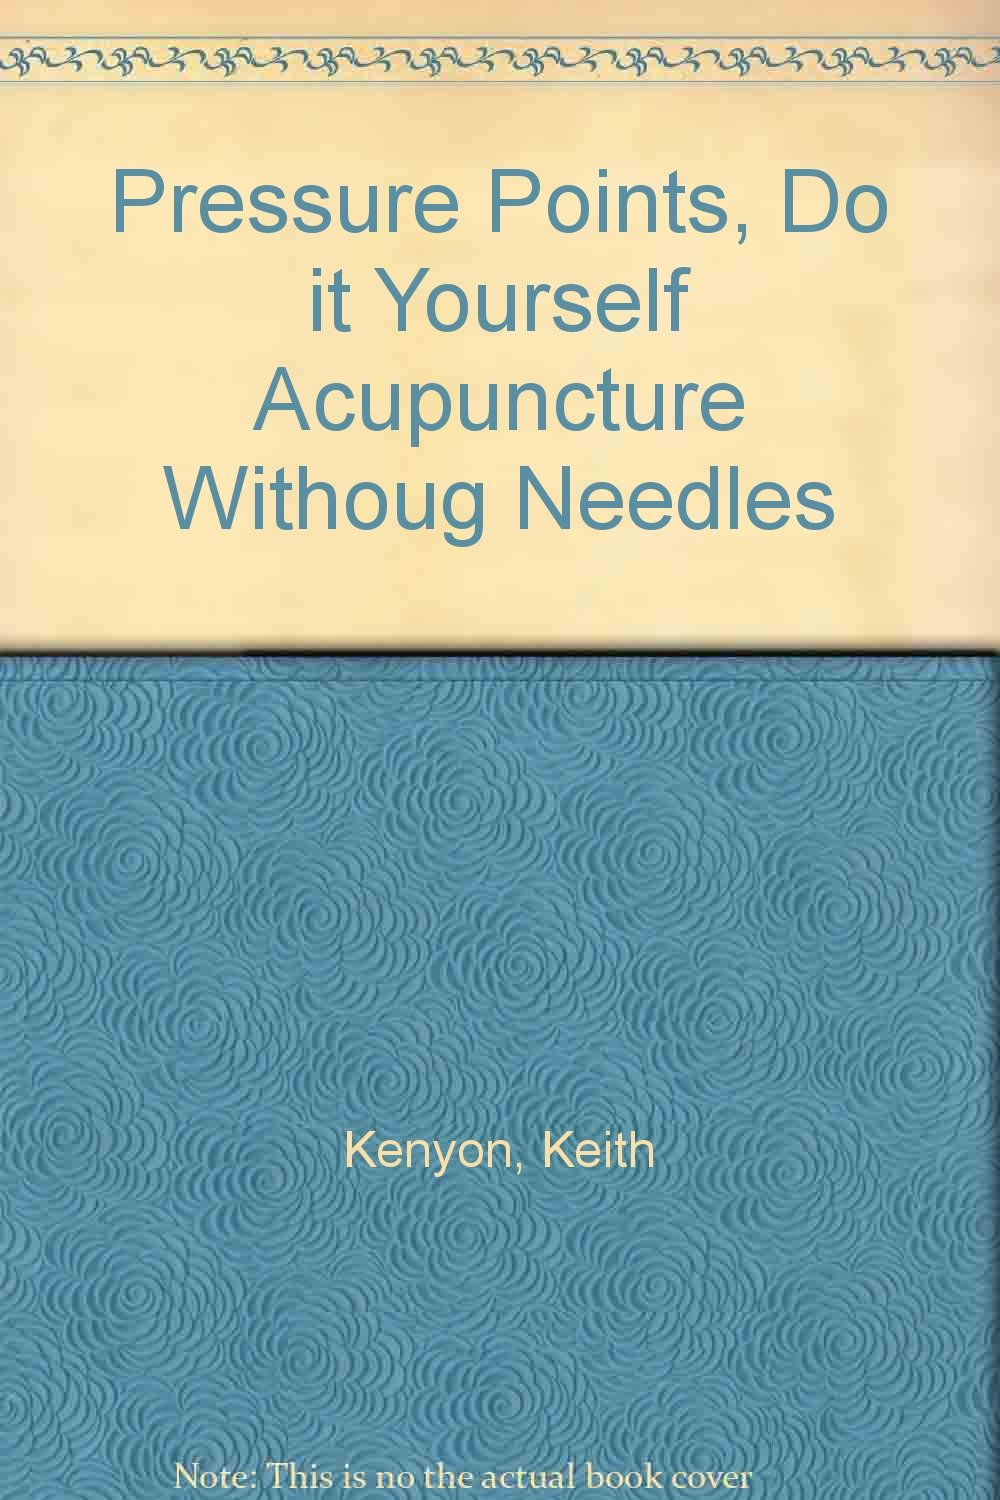 Pressure points do it yourself acupuncture withoug needles keith pressure points do it yourself acupuncture withoug needles keith kenyon drawings by paul winchell amazon books solutioingenieria Choice Image